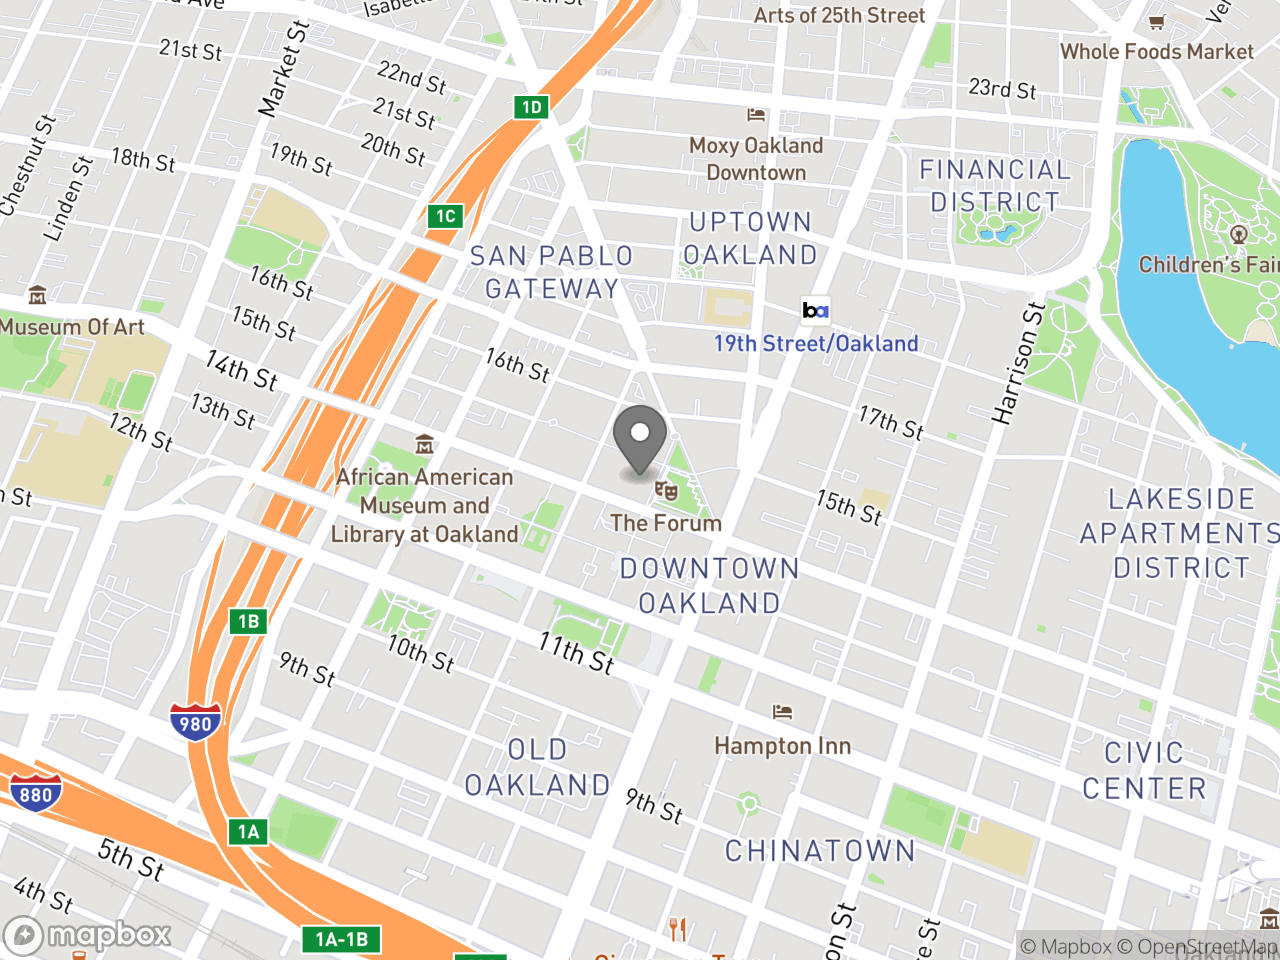 Map location for Ethics for Board and Commission Members, located at 1 Frank H. Ogawa Plaza in Oakland, CA 94612